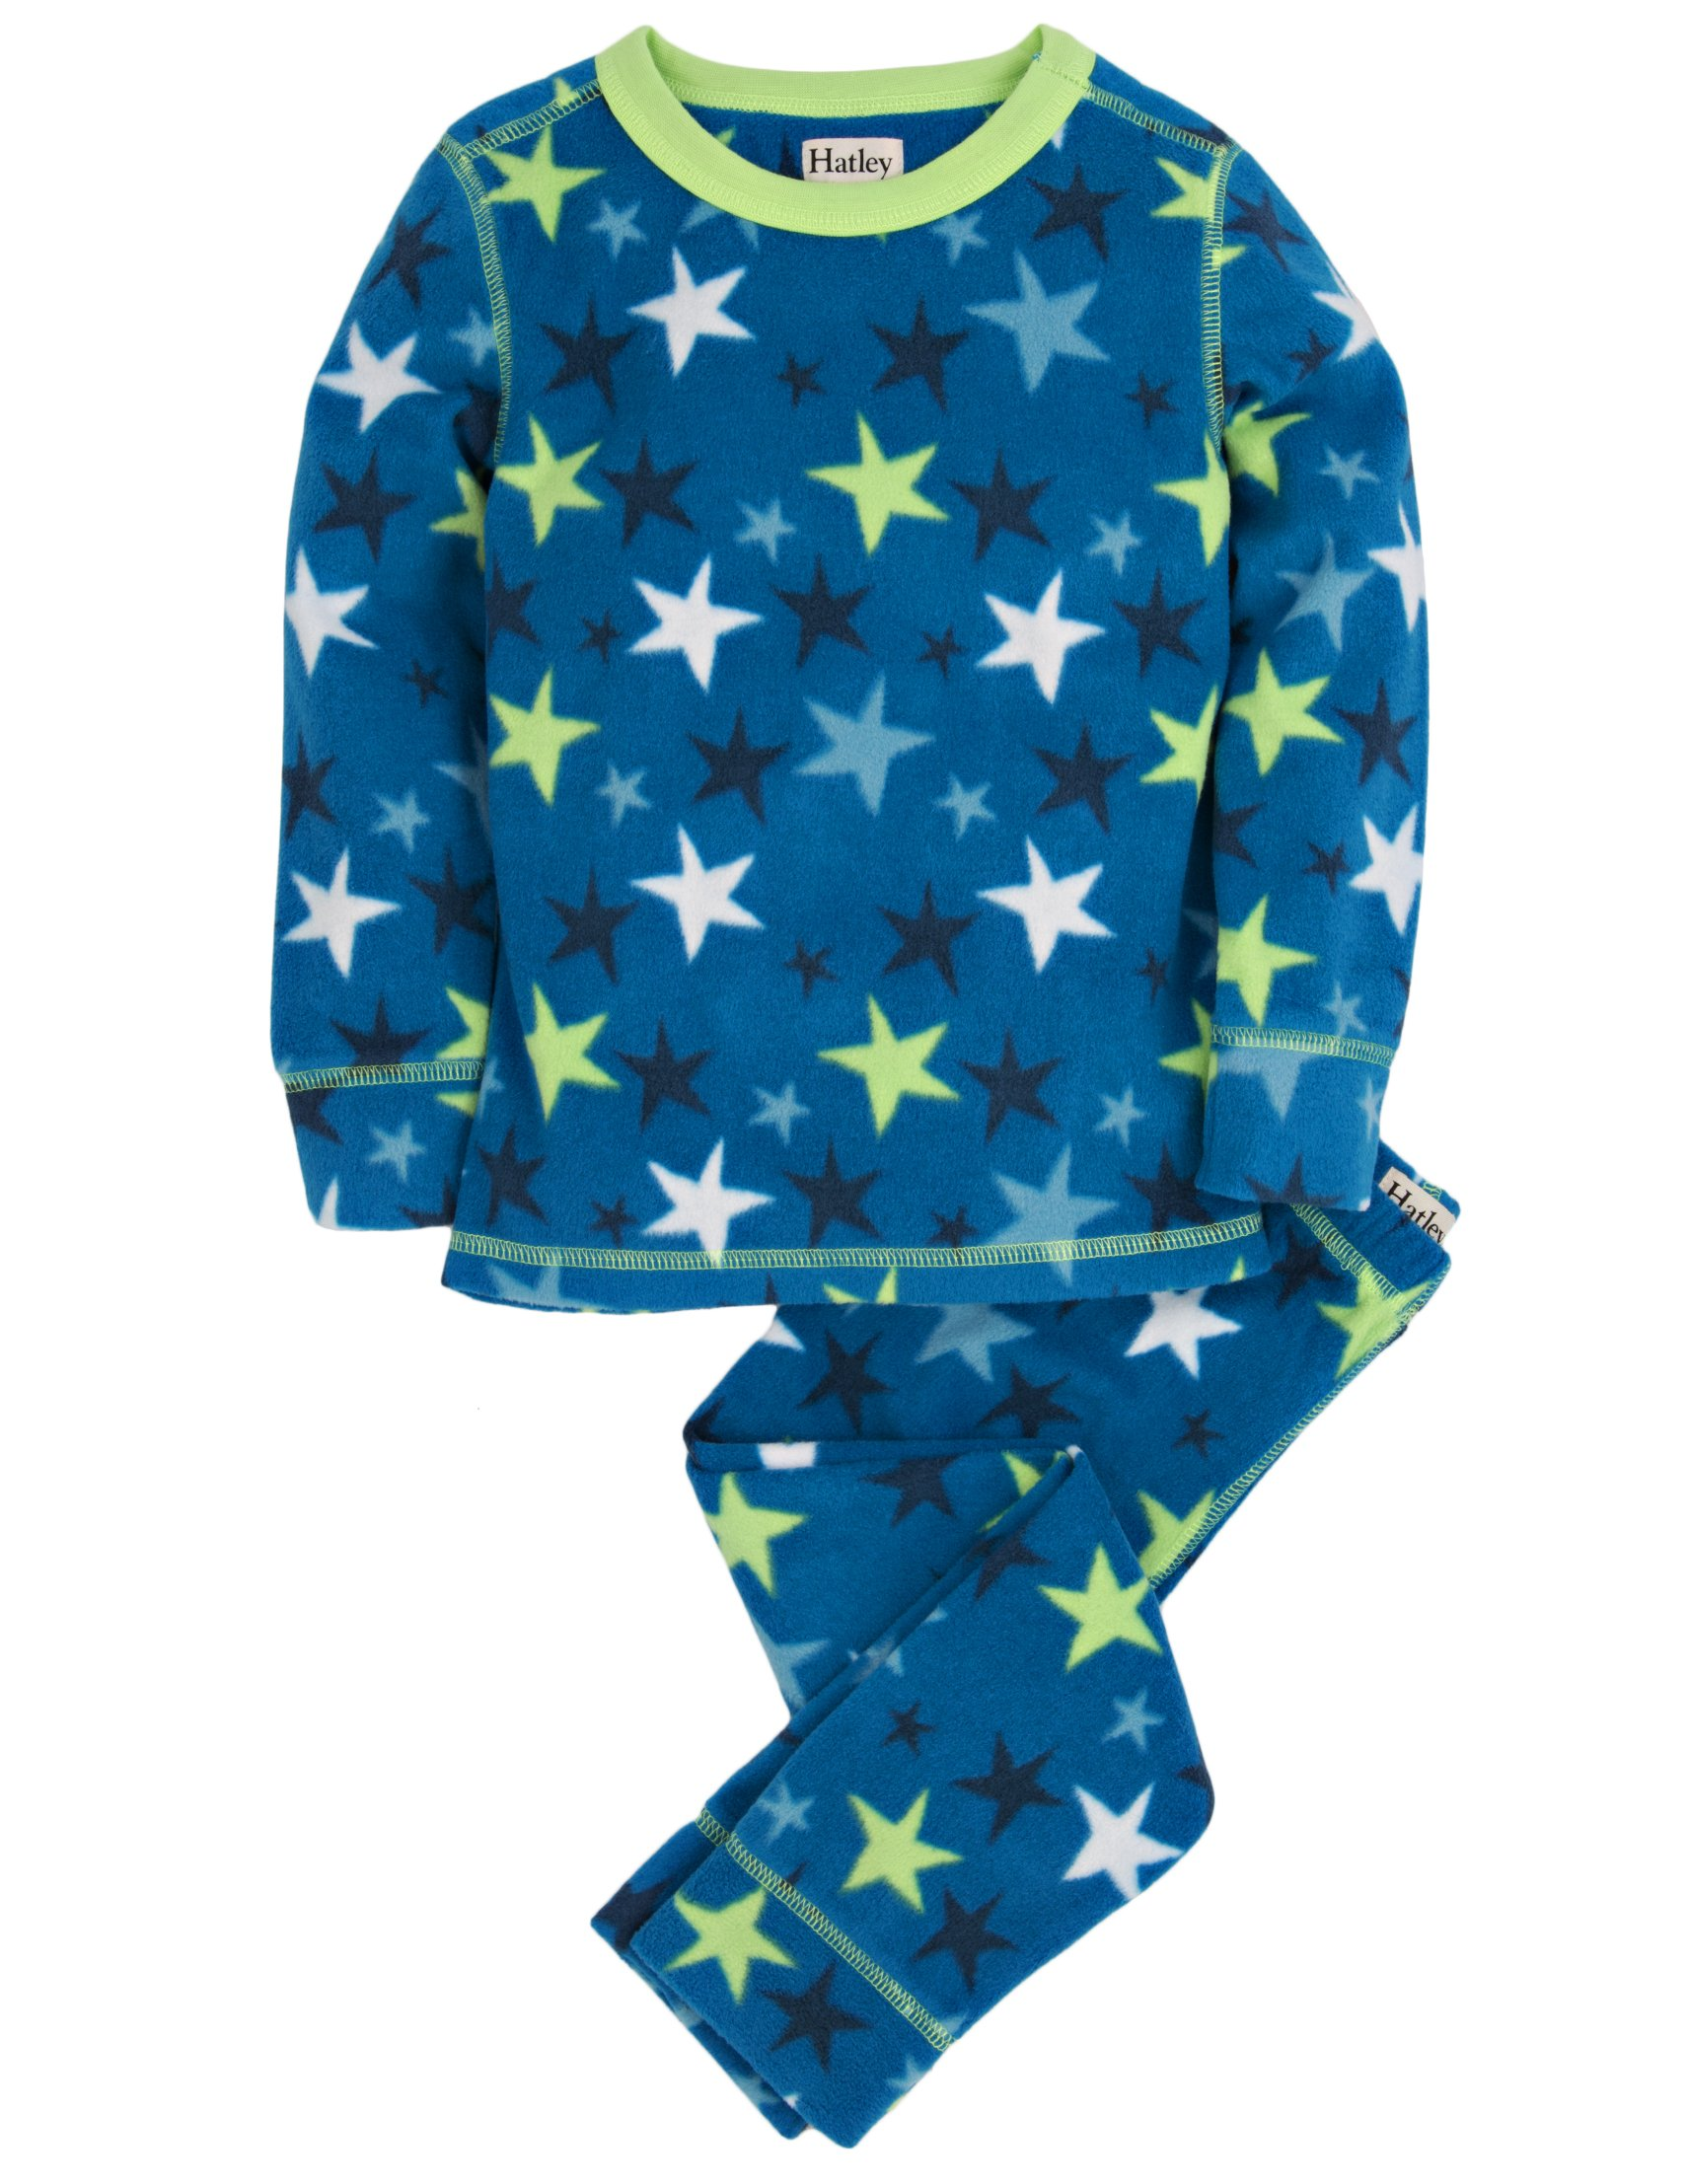 Hatley Little Boys' Thermal Ski Underwear Stars, Blue, 4 by Hatley